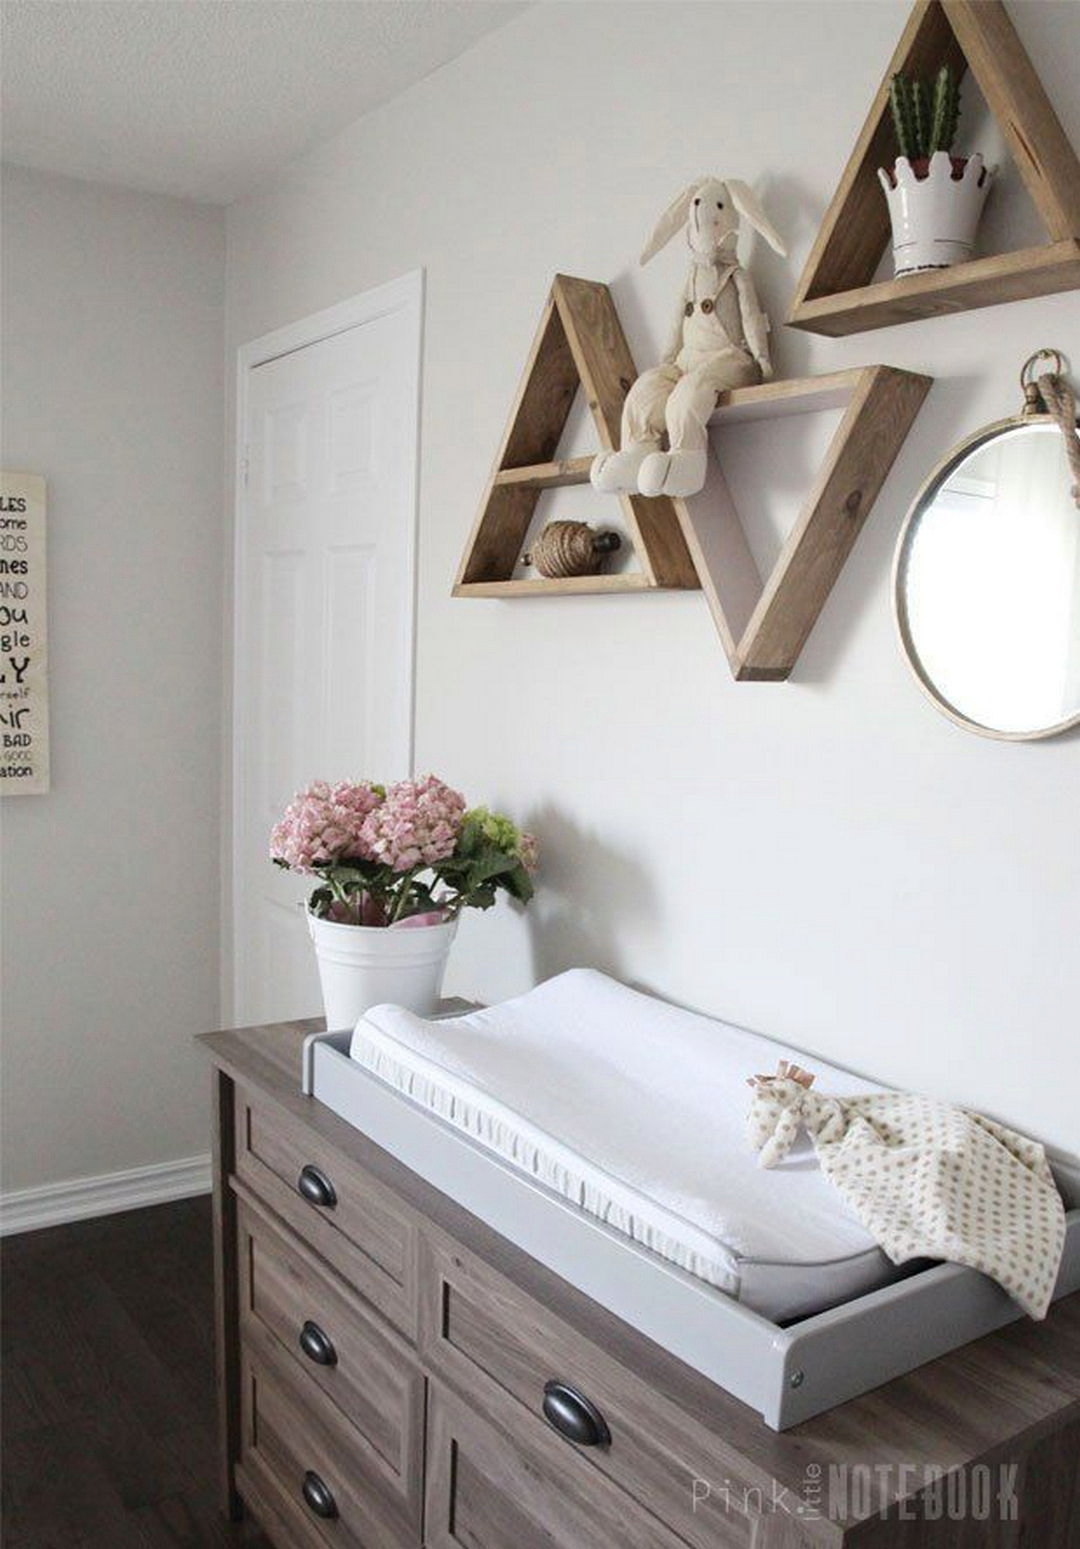 10 Ways You Can Reinvent Nursery Decor Without Looking Like An ...